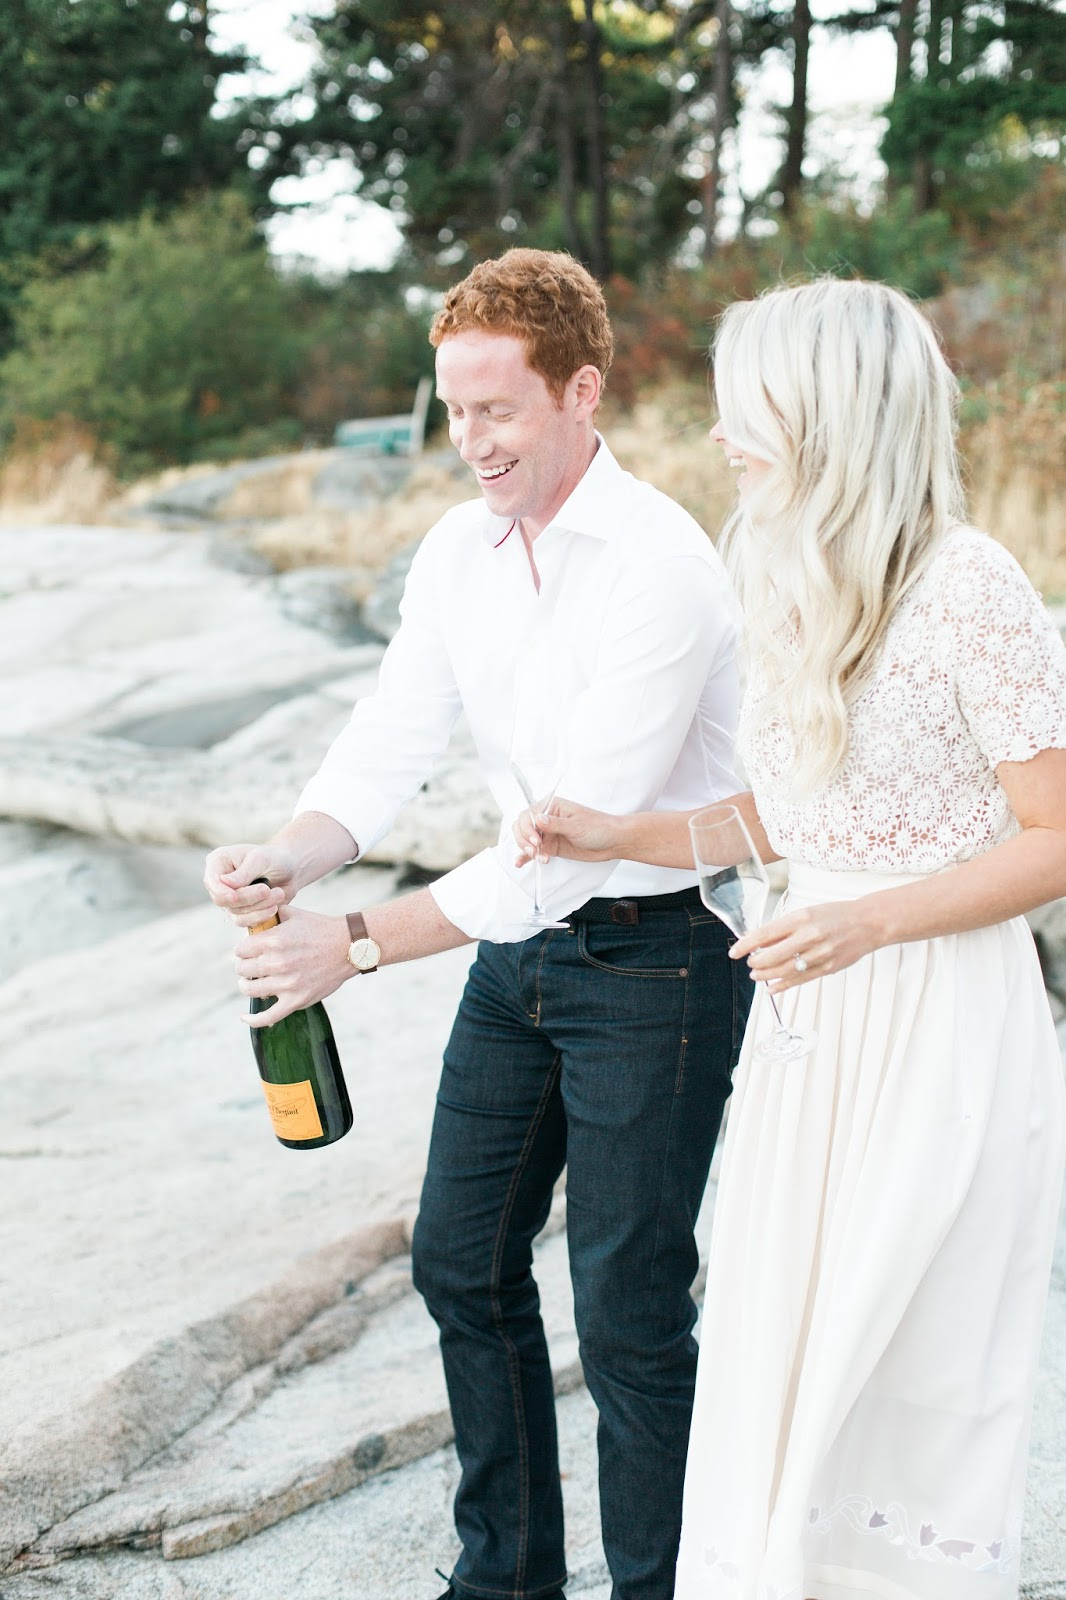 popping champagne at an engagement photo shoot